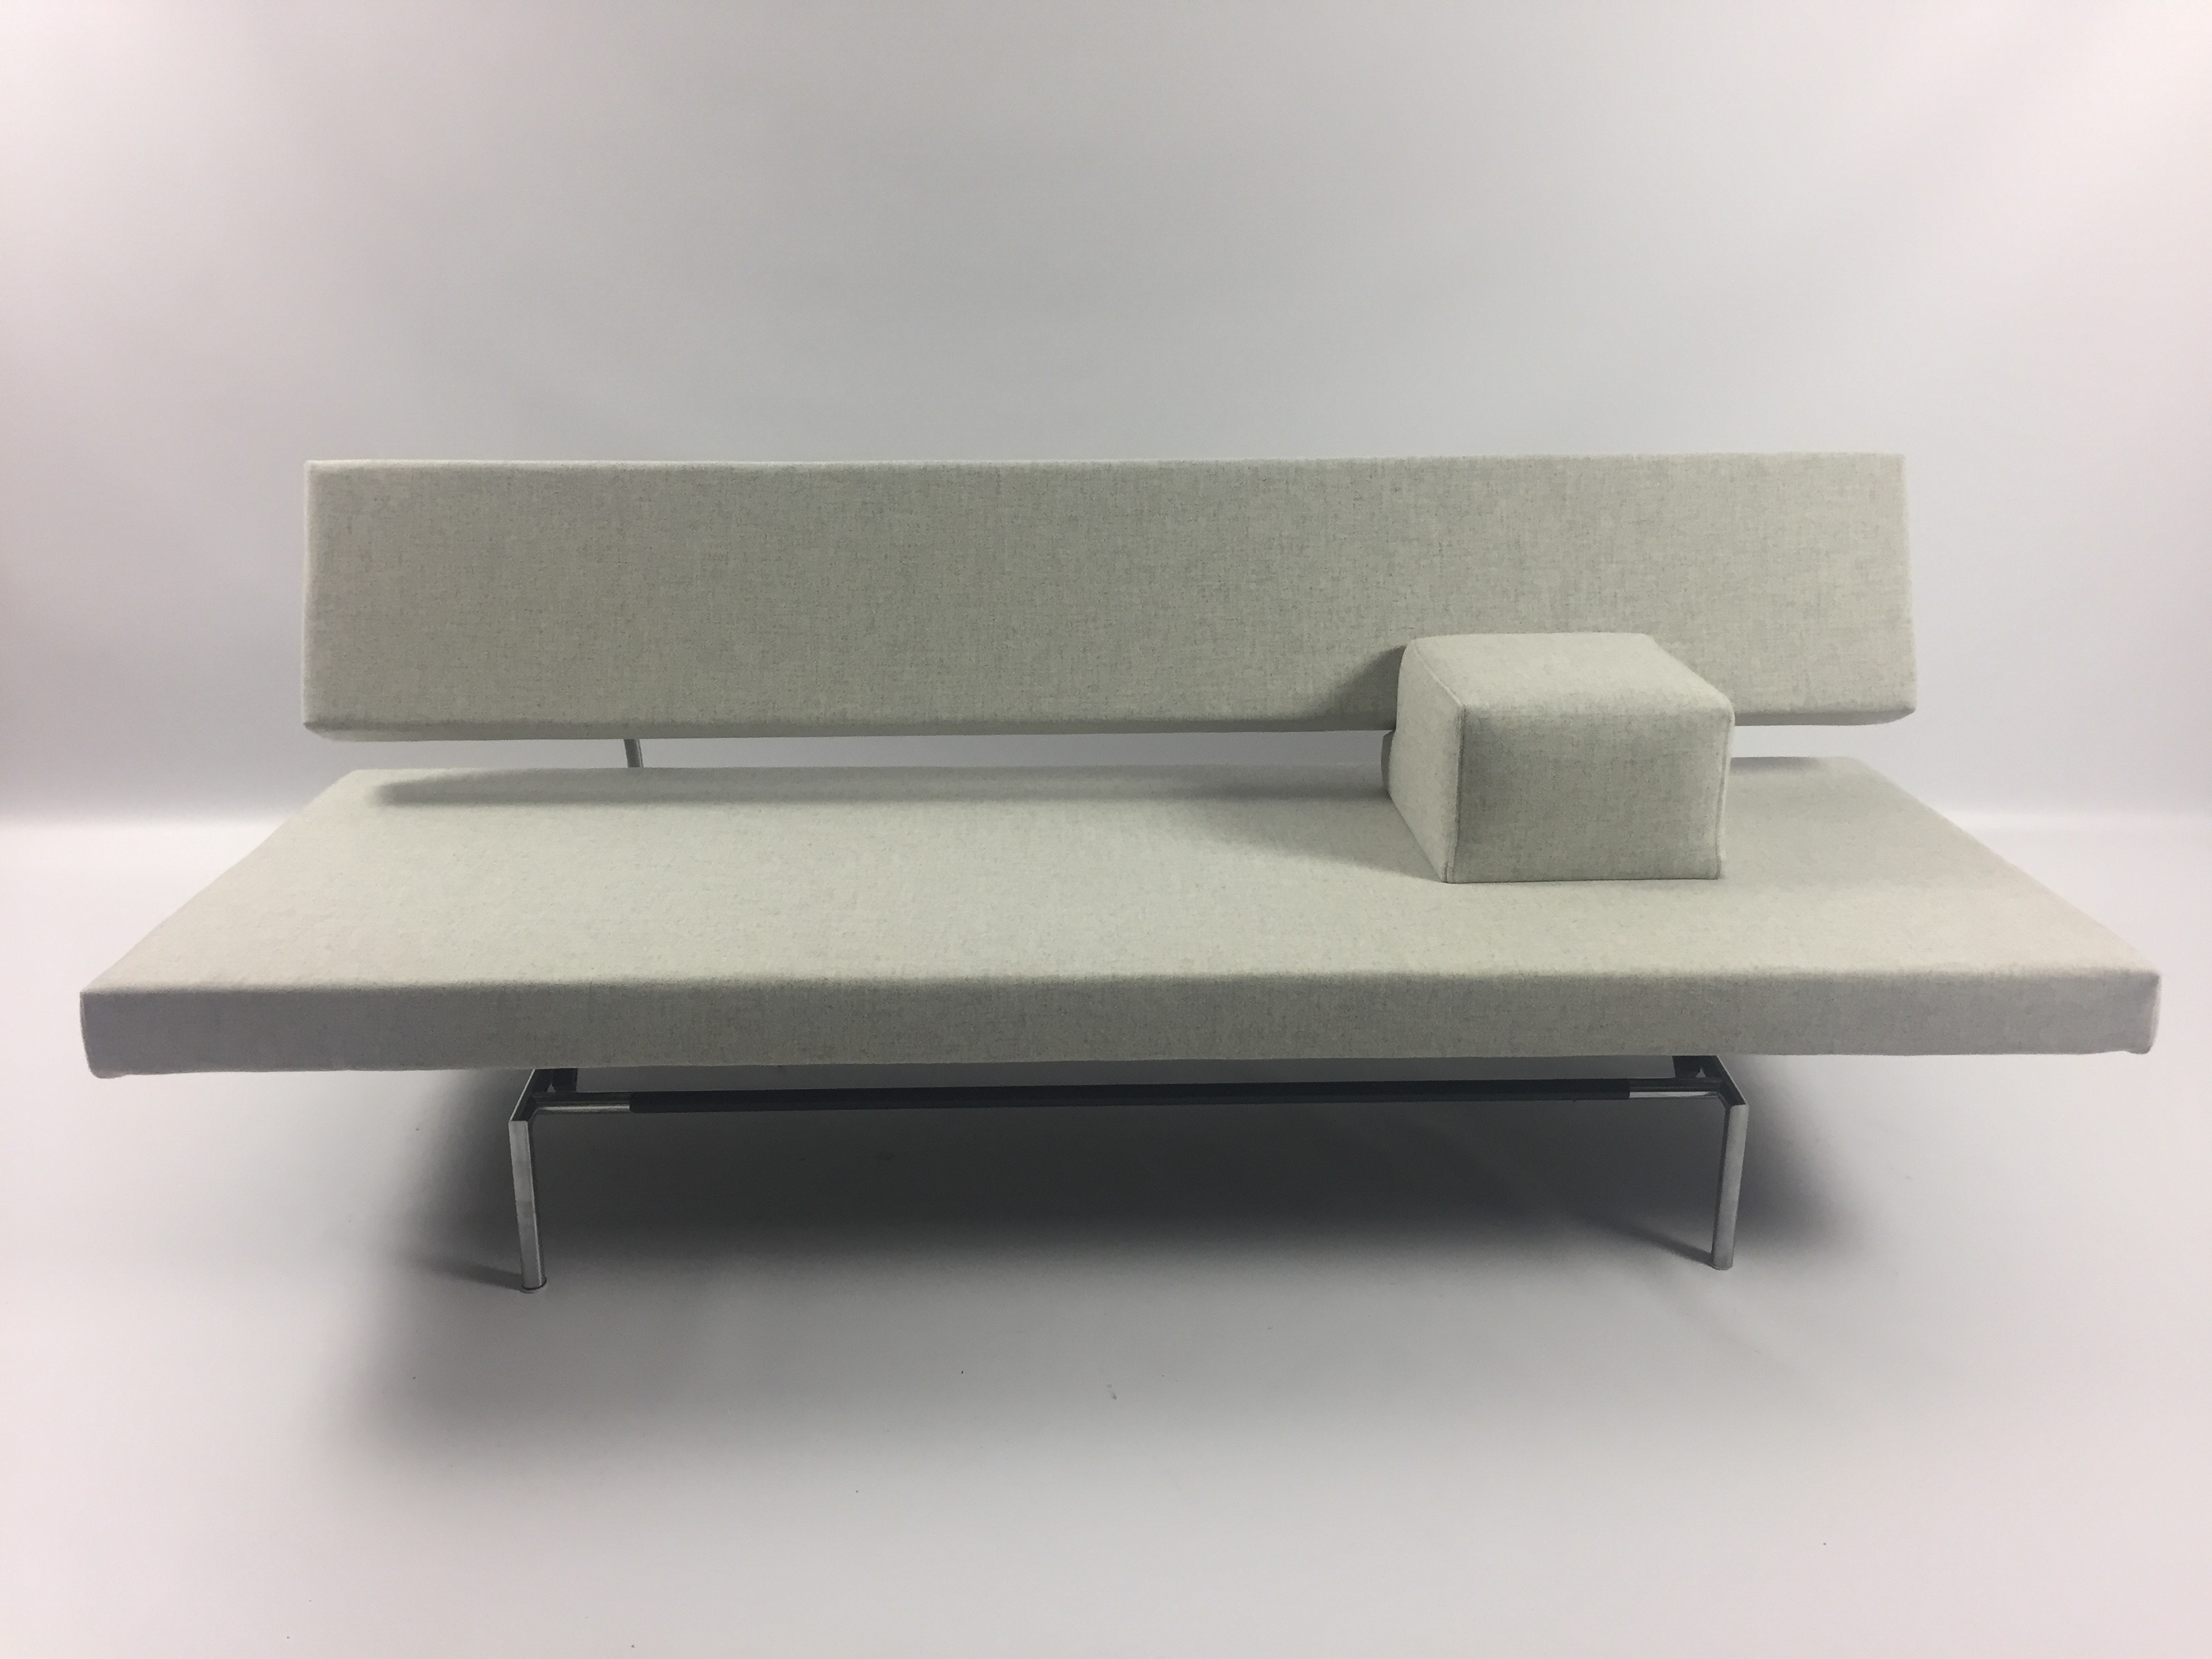 Spectrum BR02 (Sleeping) Sofa. Designed by Martin Visser in 1960. Completely restored.